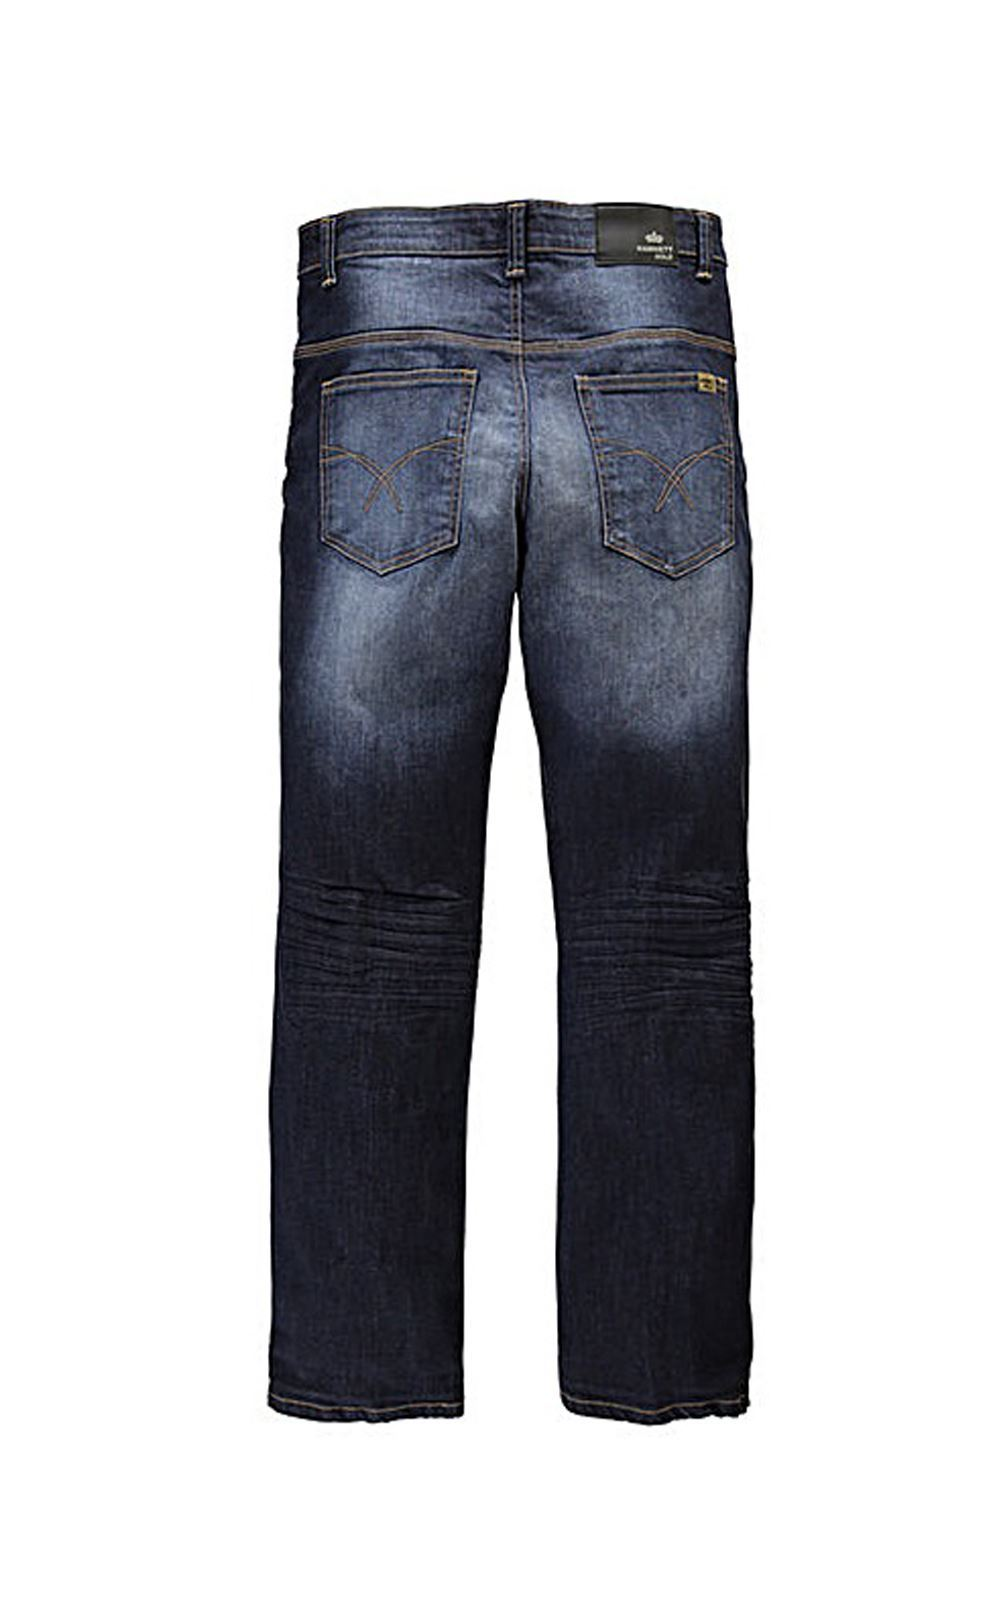 Mens Straight Leg Jeans Plus Size Denim By Hamnett Gold All Waist ...